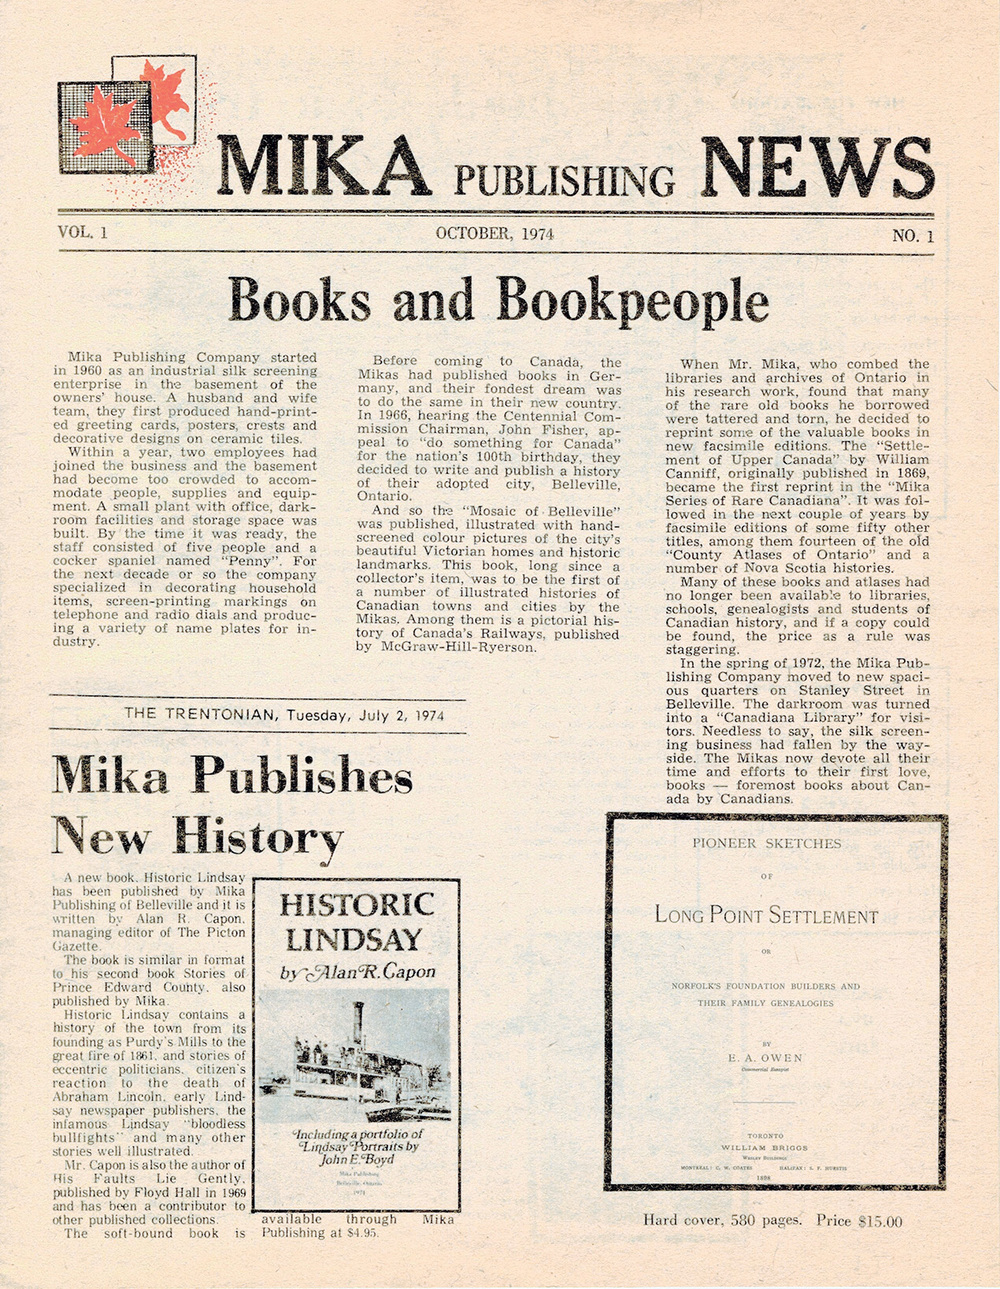 Front page of Mika Publishing News, Vol.1, No.1., October 1974. The Mikas published their first book in 1962